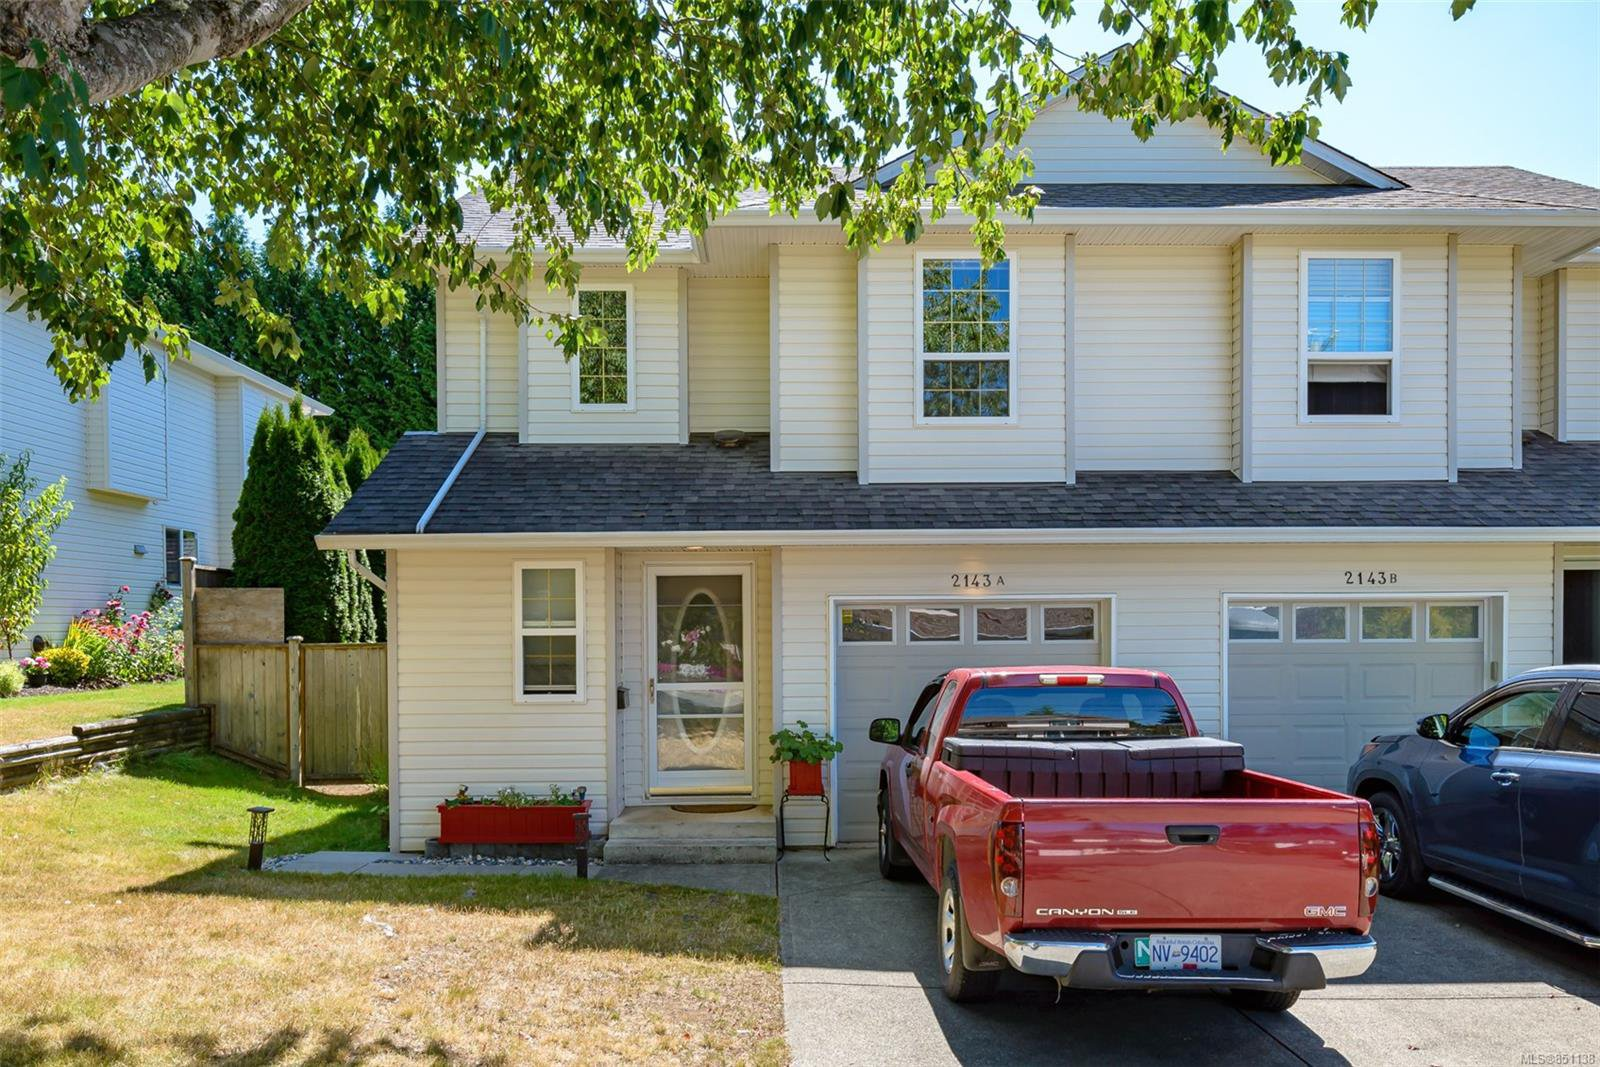 Main Photo: A 2143 Mission Rd in : CV Courtenay East Half Duplex for sale (Comox Valley)  : MLS®# 851138